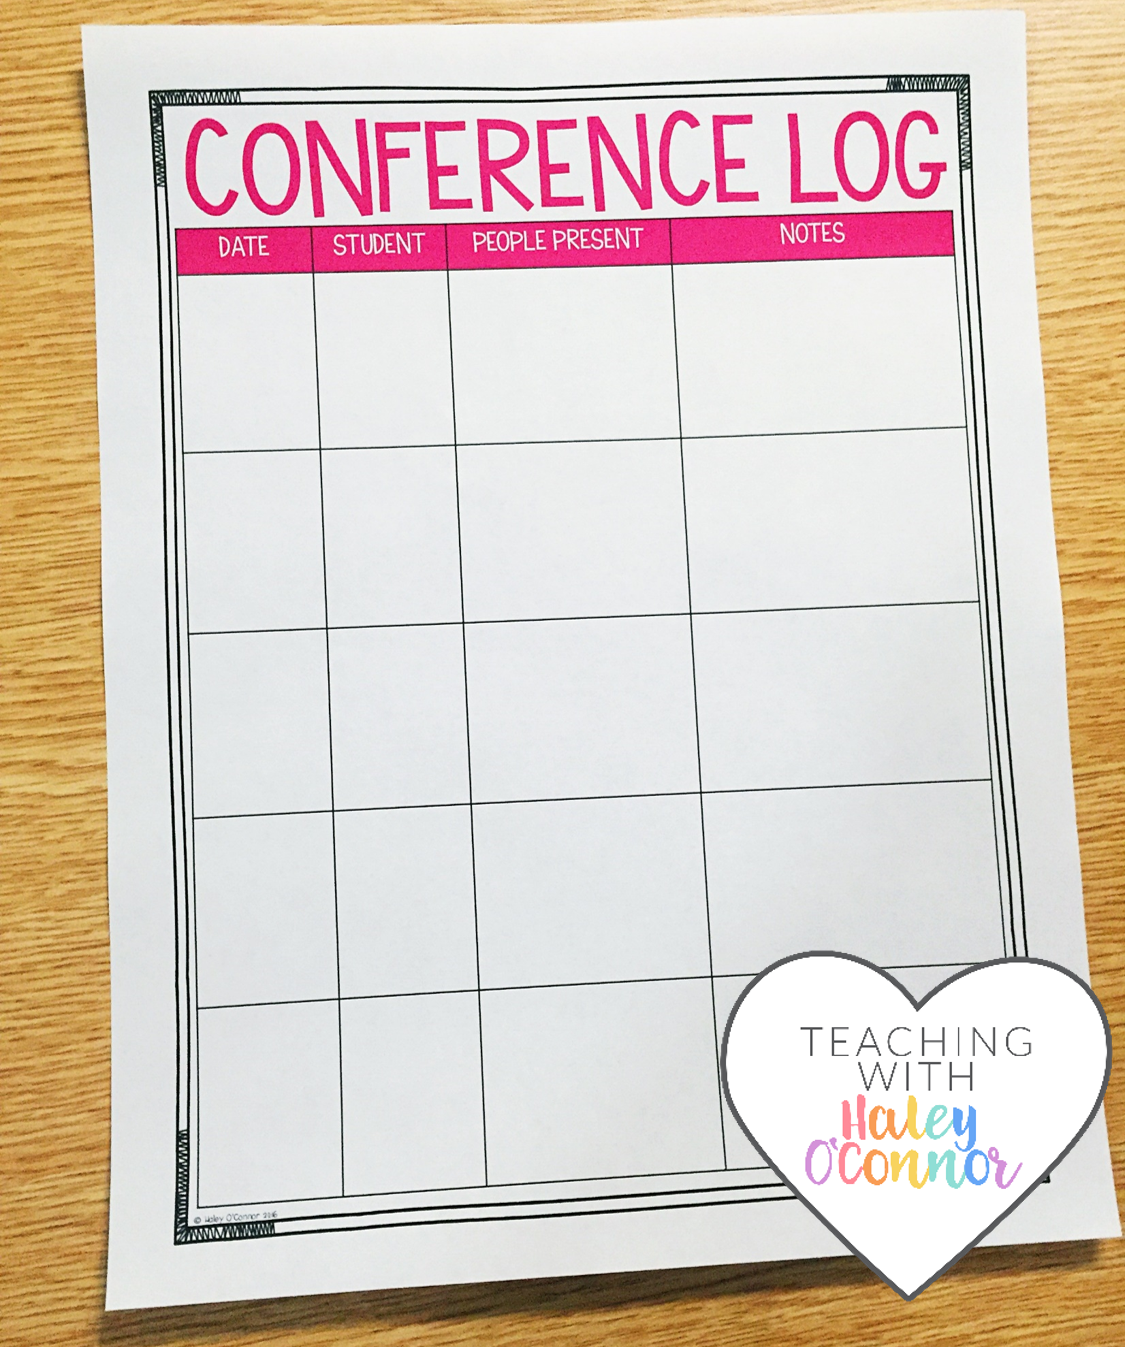 Conference Log For Teachers By Haley OConnor